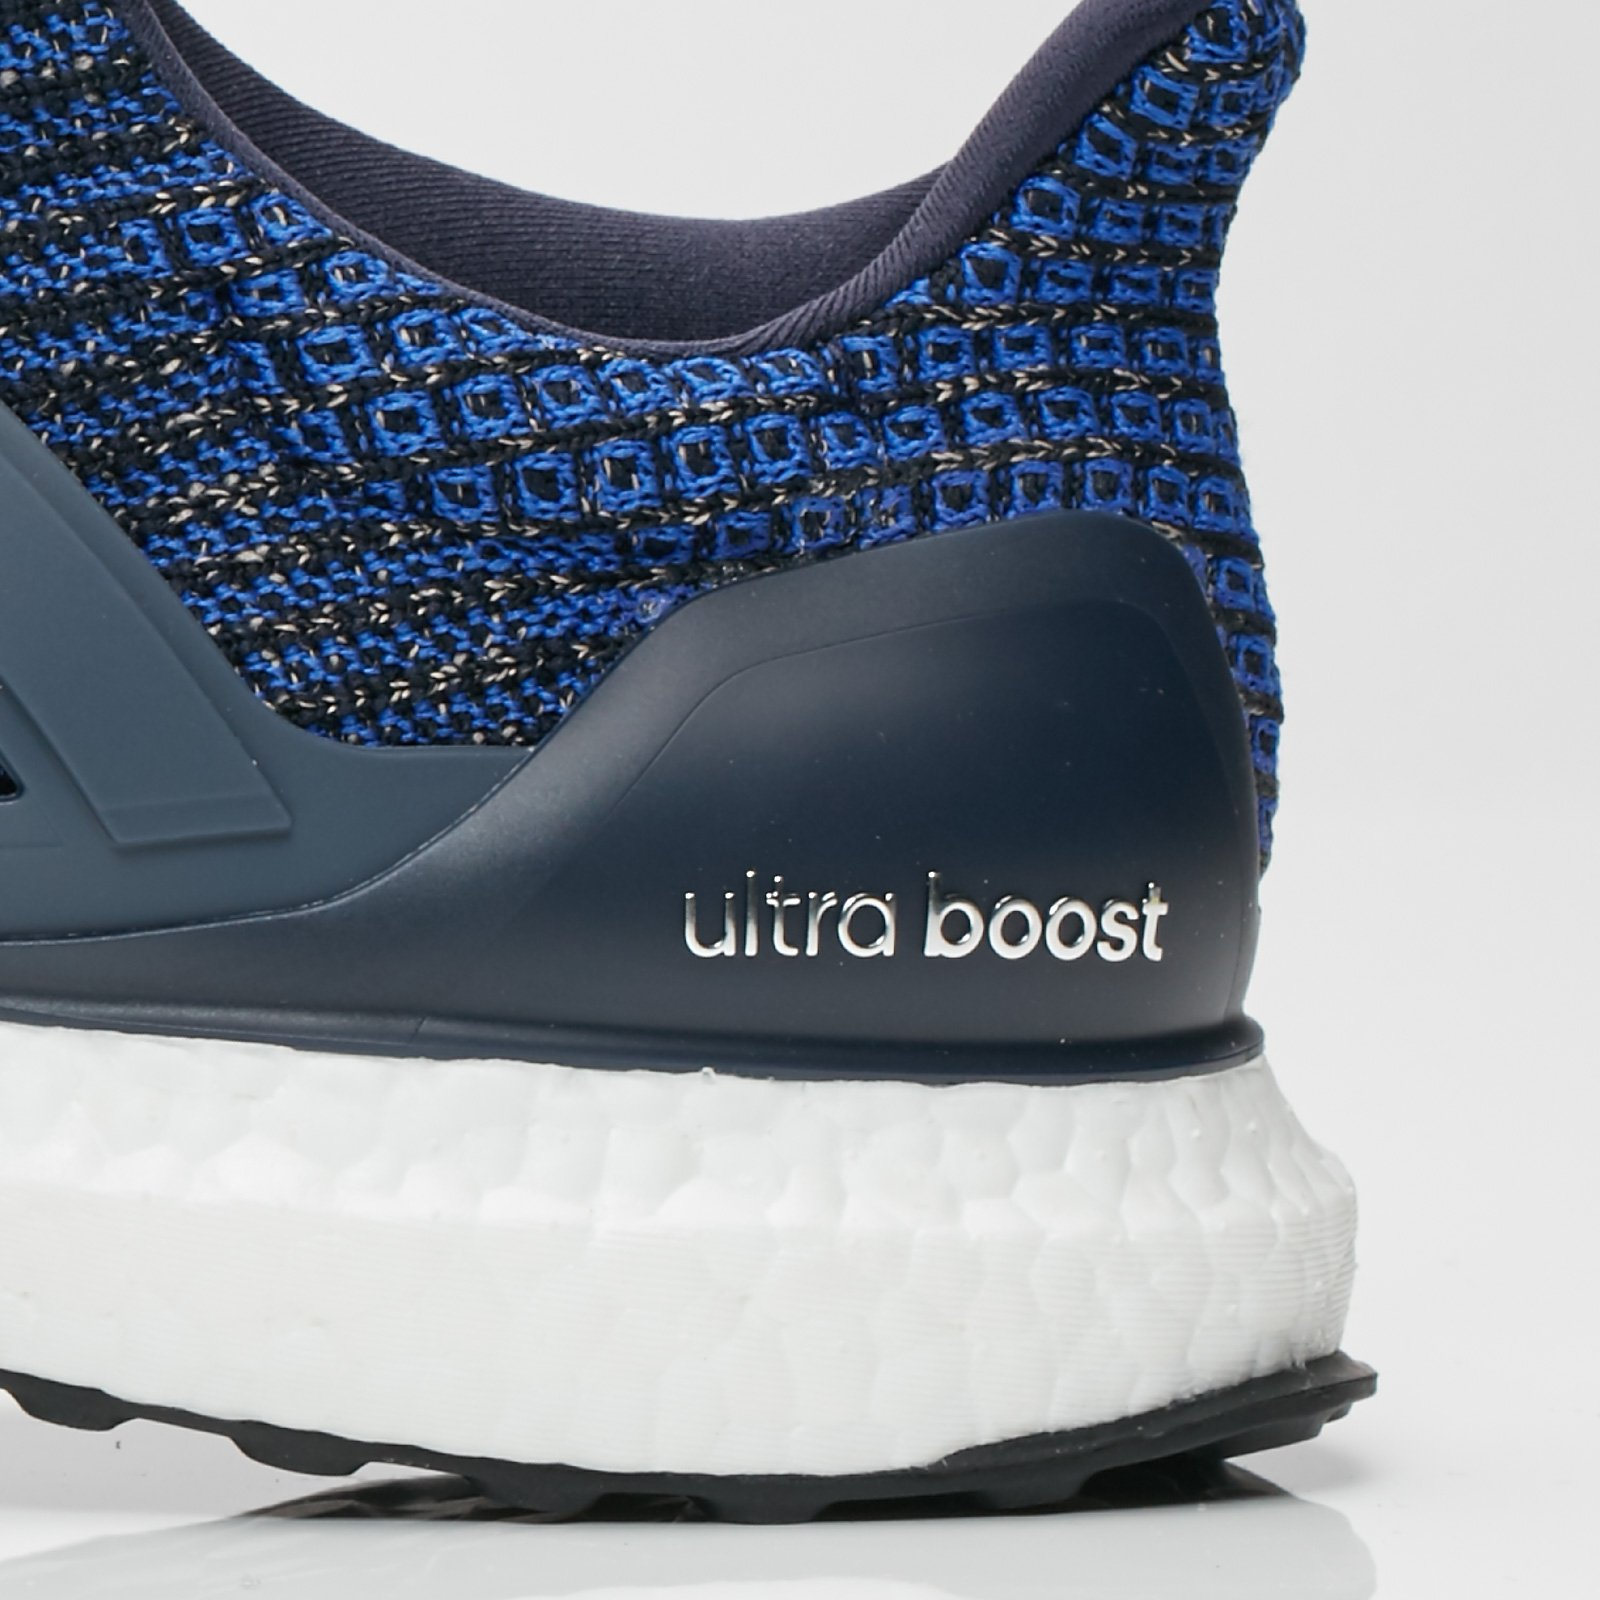 Buy Adidas Ultra Boost 4.0 Carbon Navy   CP9250 Shoes